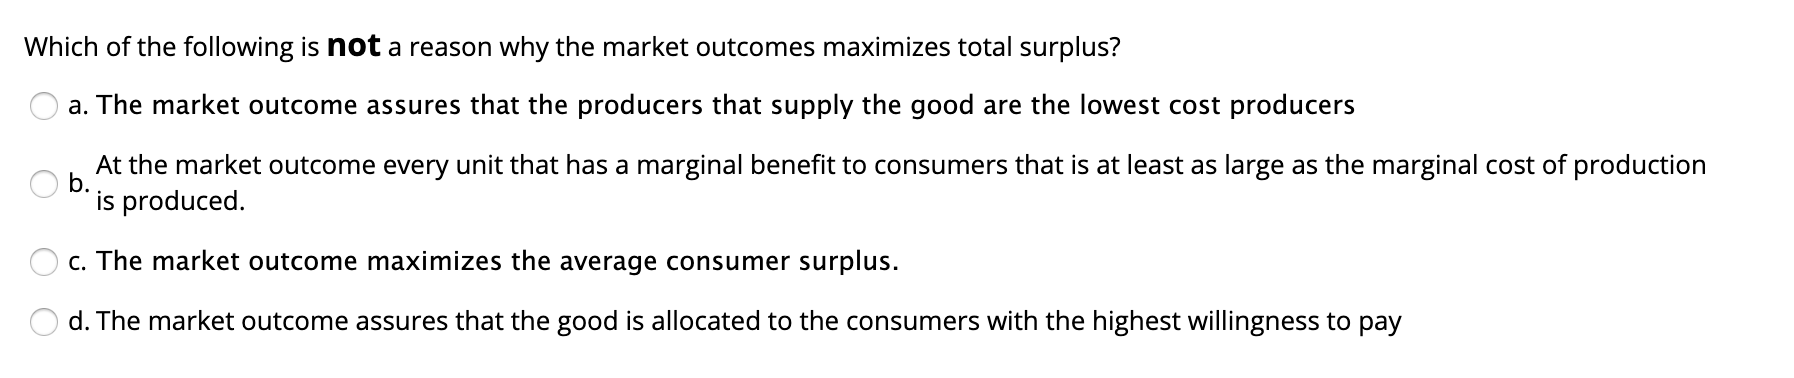 Which of the following is not a reason why the market outcomes maximizes total surplus? a. The market outcome assures that the producers that supply the good are the lowest cost producers At the market outcome every unit that has a marginal benefit to consumers that is at least as large as the marginal cost of production b. is produced. c. The market outcome maximizes the average consumer surplus. d. The market outcome assures that the good is allocated to the consumers with the highest willingness to pay